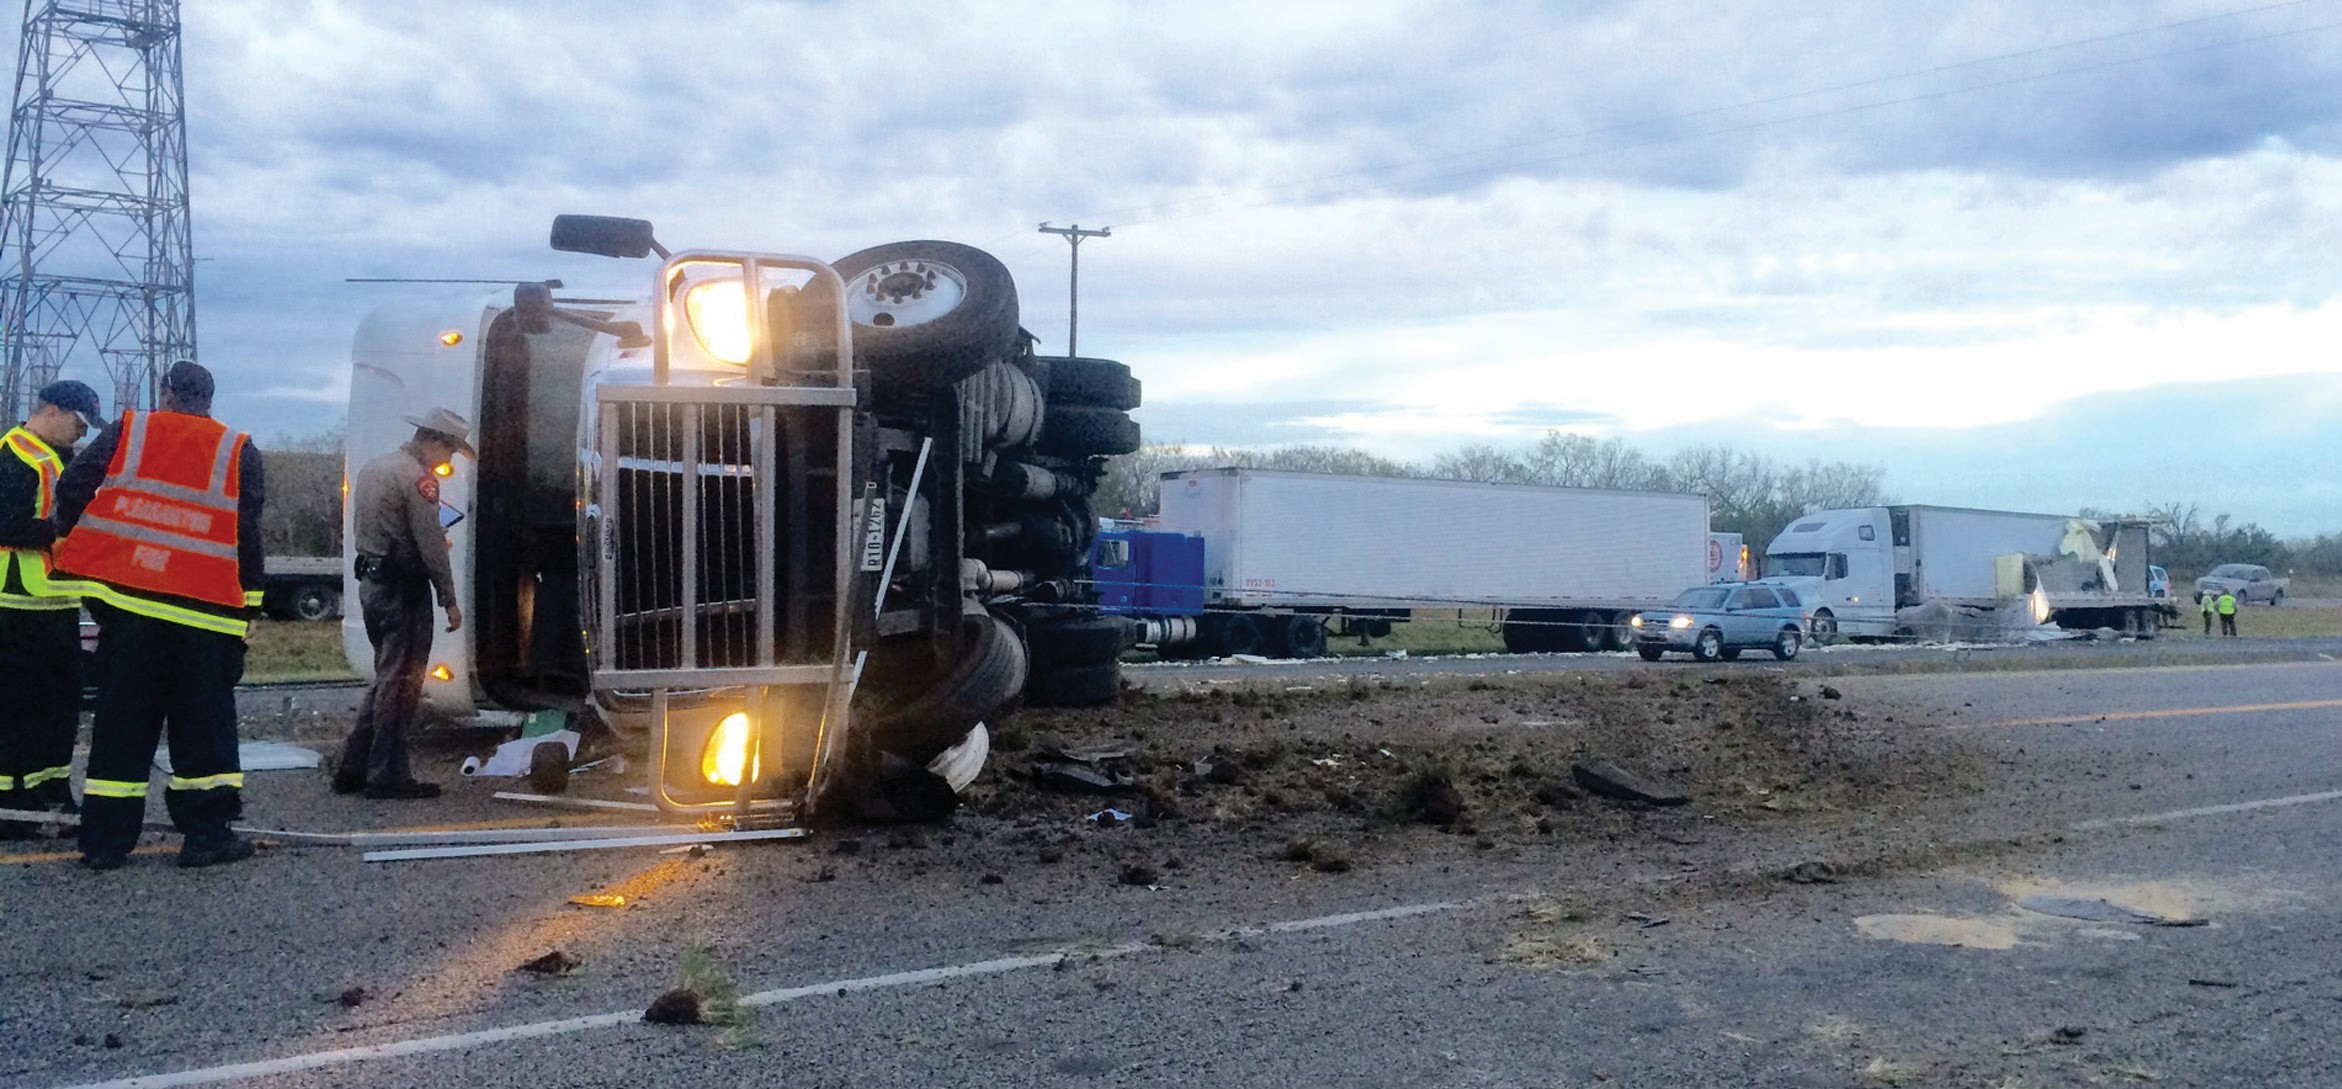 This 18-wheeler accident on Monday morning, Dec. 21, tied up traffic for several hours on IH-37. At least one person was transported by EMS, after an 18-wheeler travelling southbound struck another 18-wheeler that was parked on the shoulder.